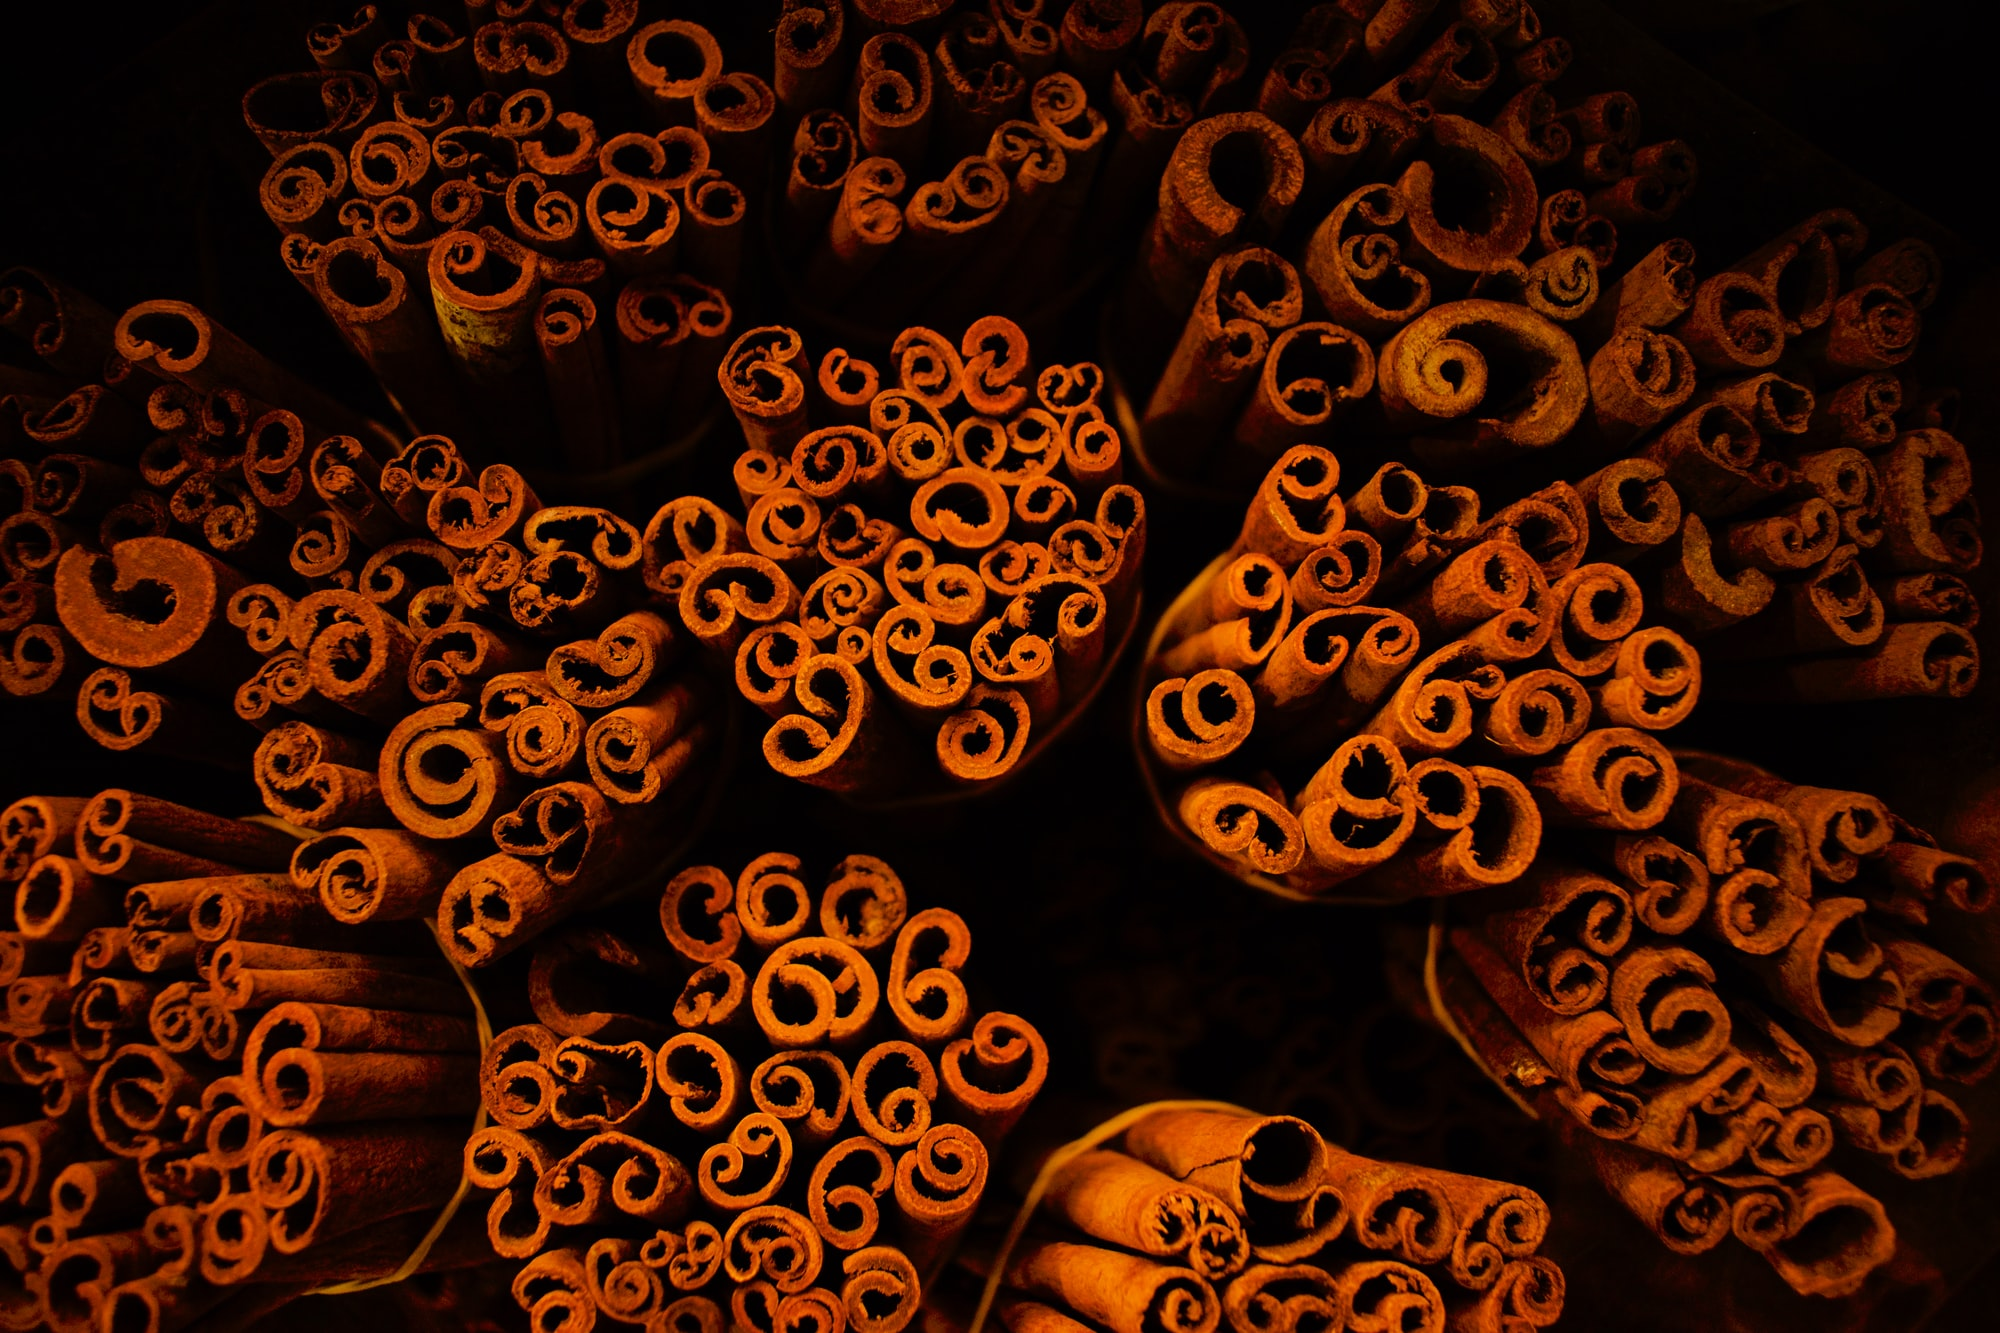 A picture taken at a spice stall in the famous spice market in Dubai showing an interesting pattern created by cinnamon sticks on display. With a limited light fallling on the subject, the background automatically became dark creating a deep effect.